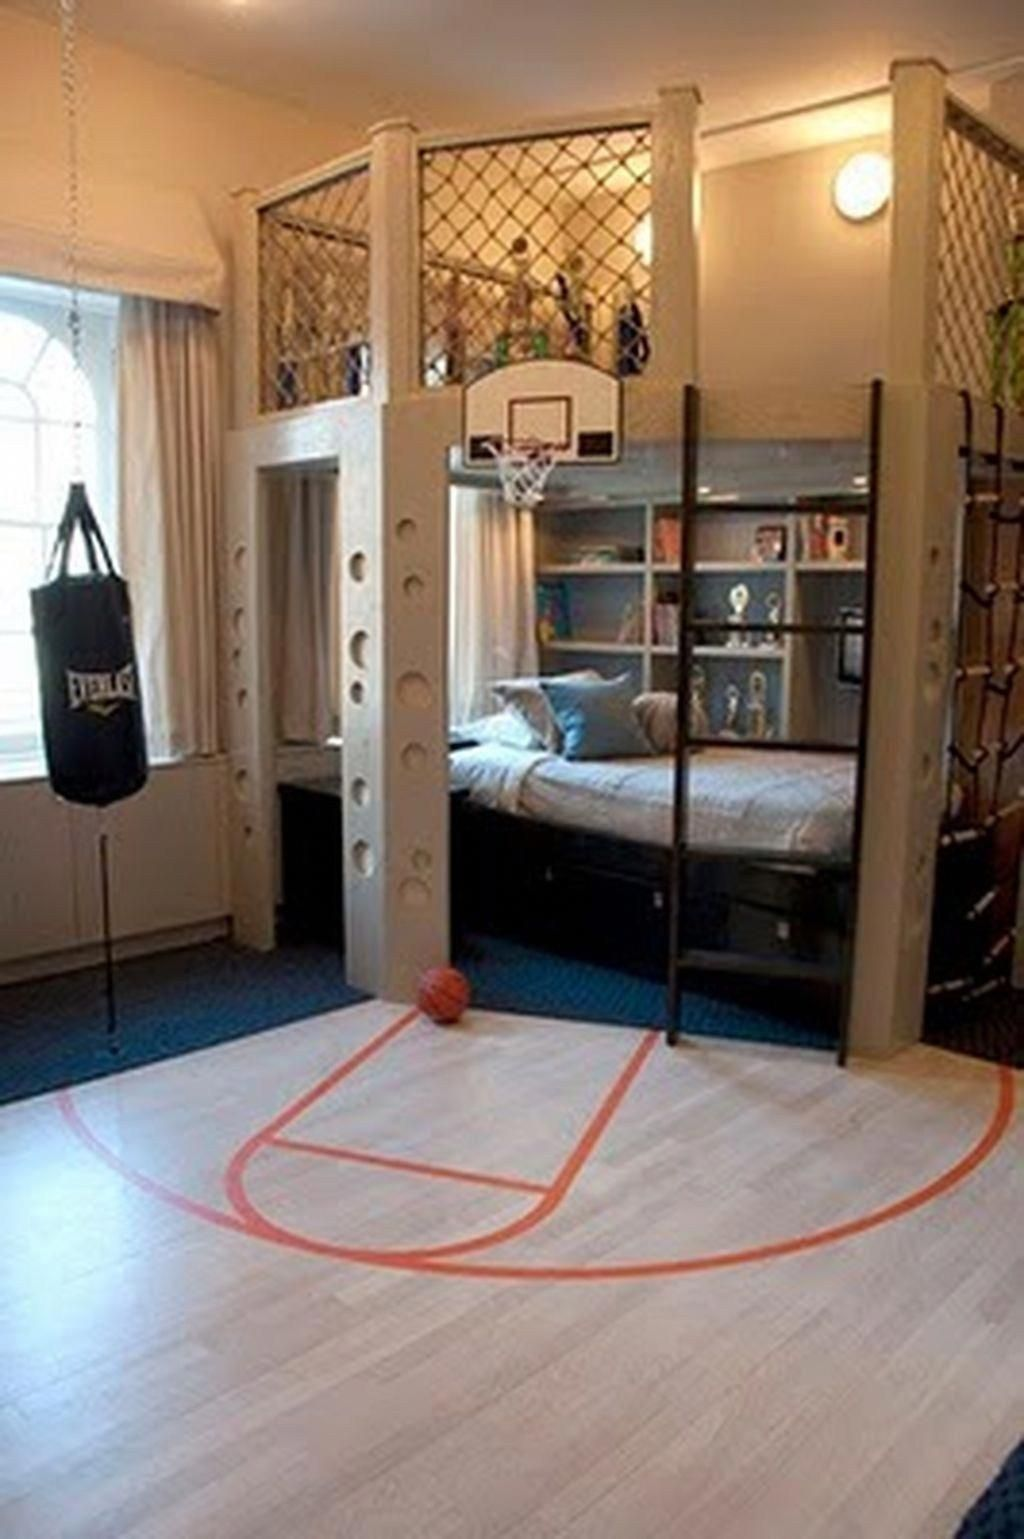 Cool And Cute Kids Bedroom Ideas For Boys Kidsroomsdecor Basketball Room Creative Kids Rooms Kids Sports Room